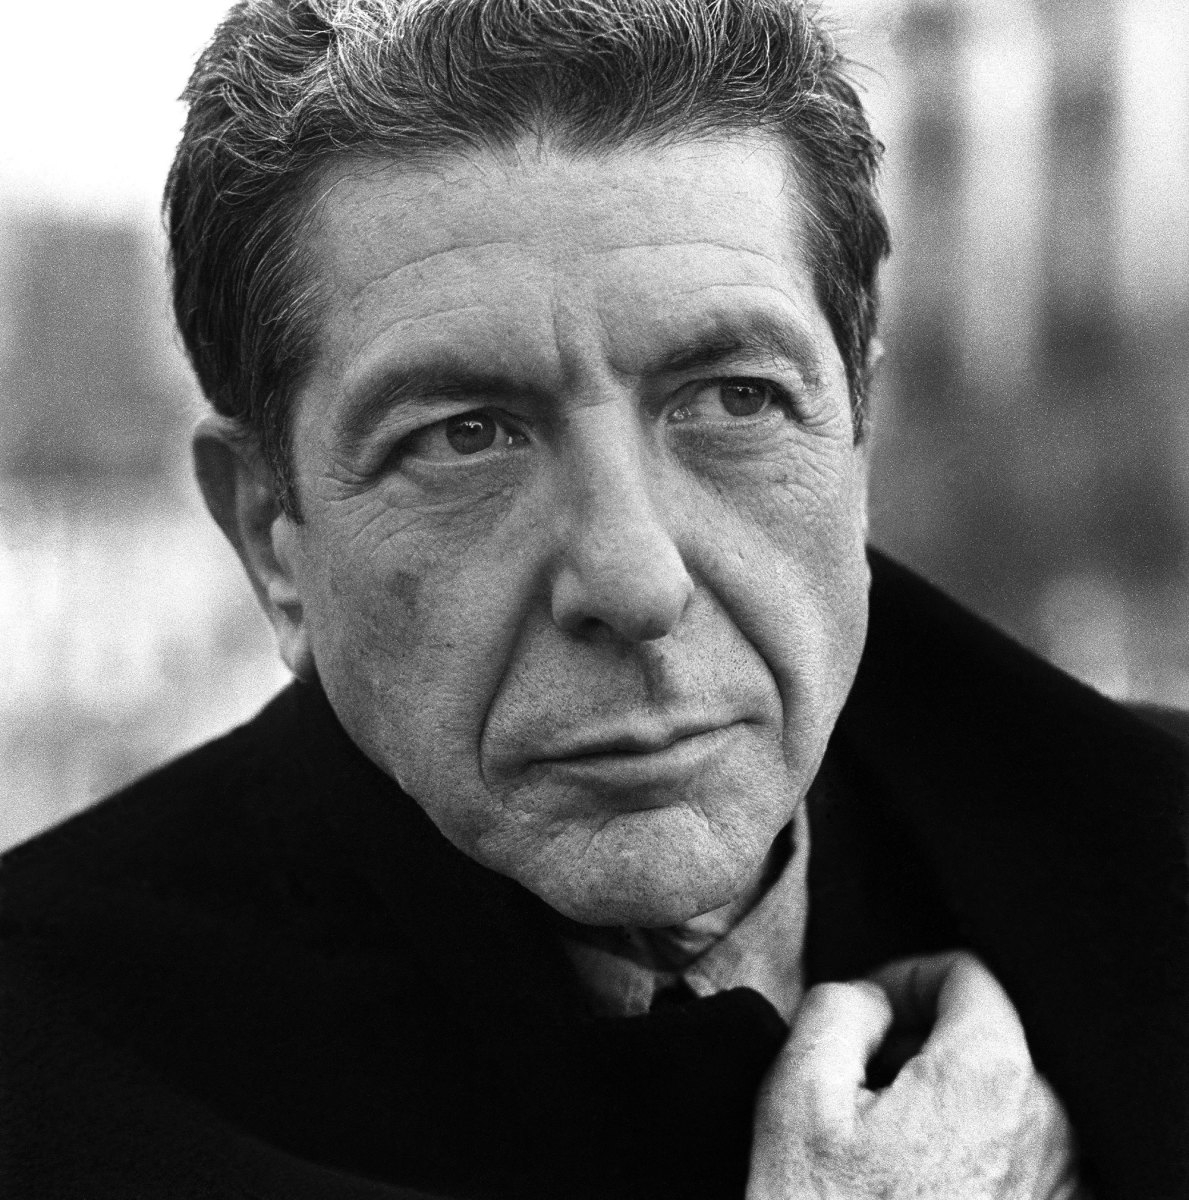 Leonard Cohen, renowned Canadian poet and singer-songwriter, dead at 82